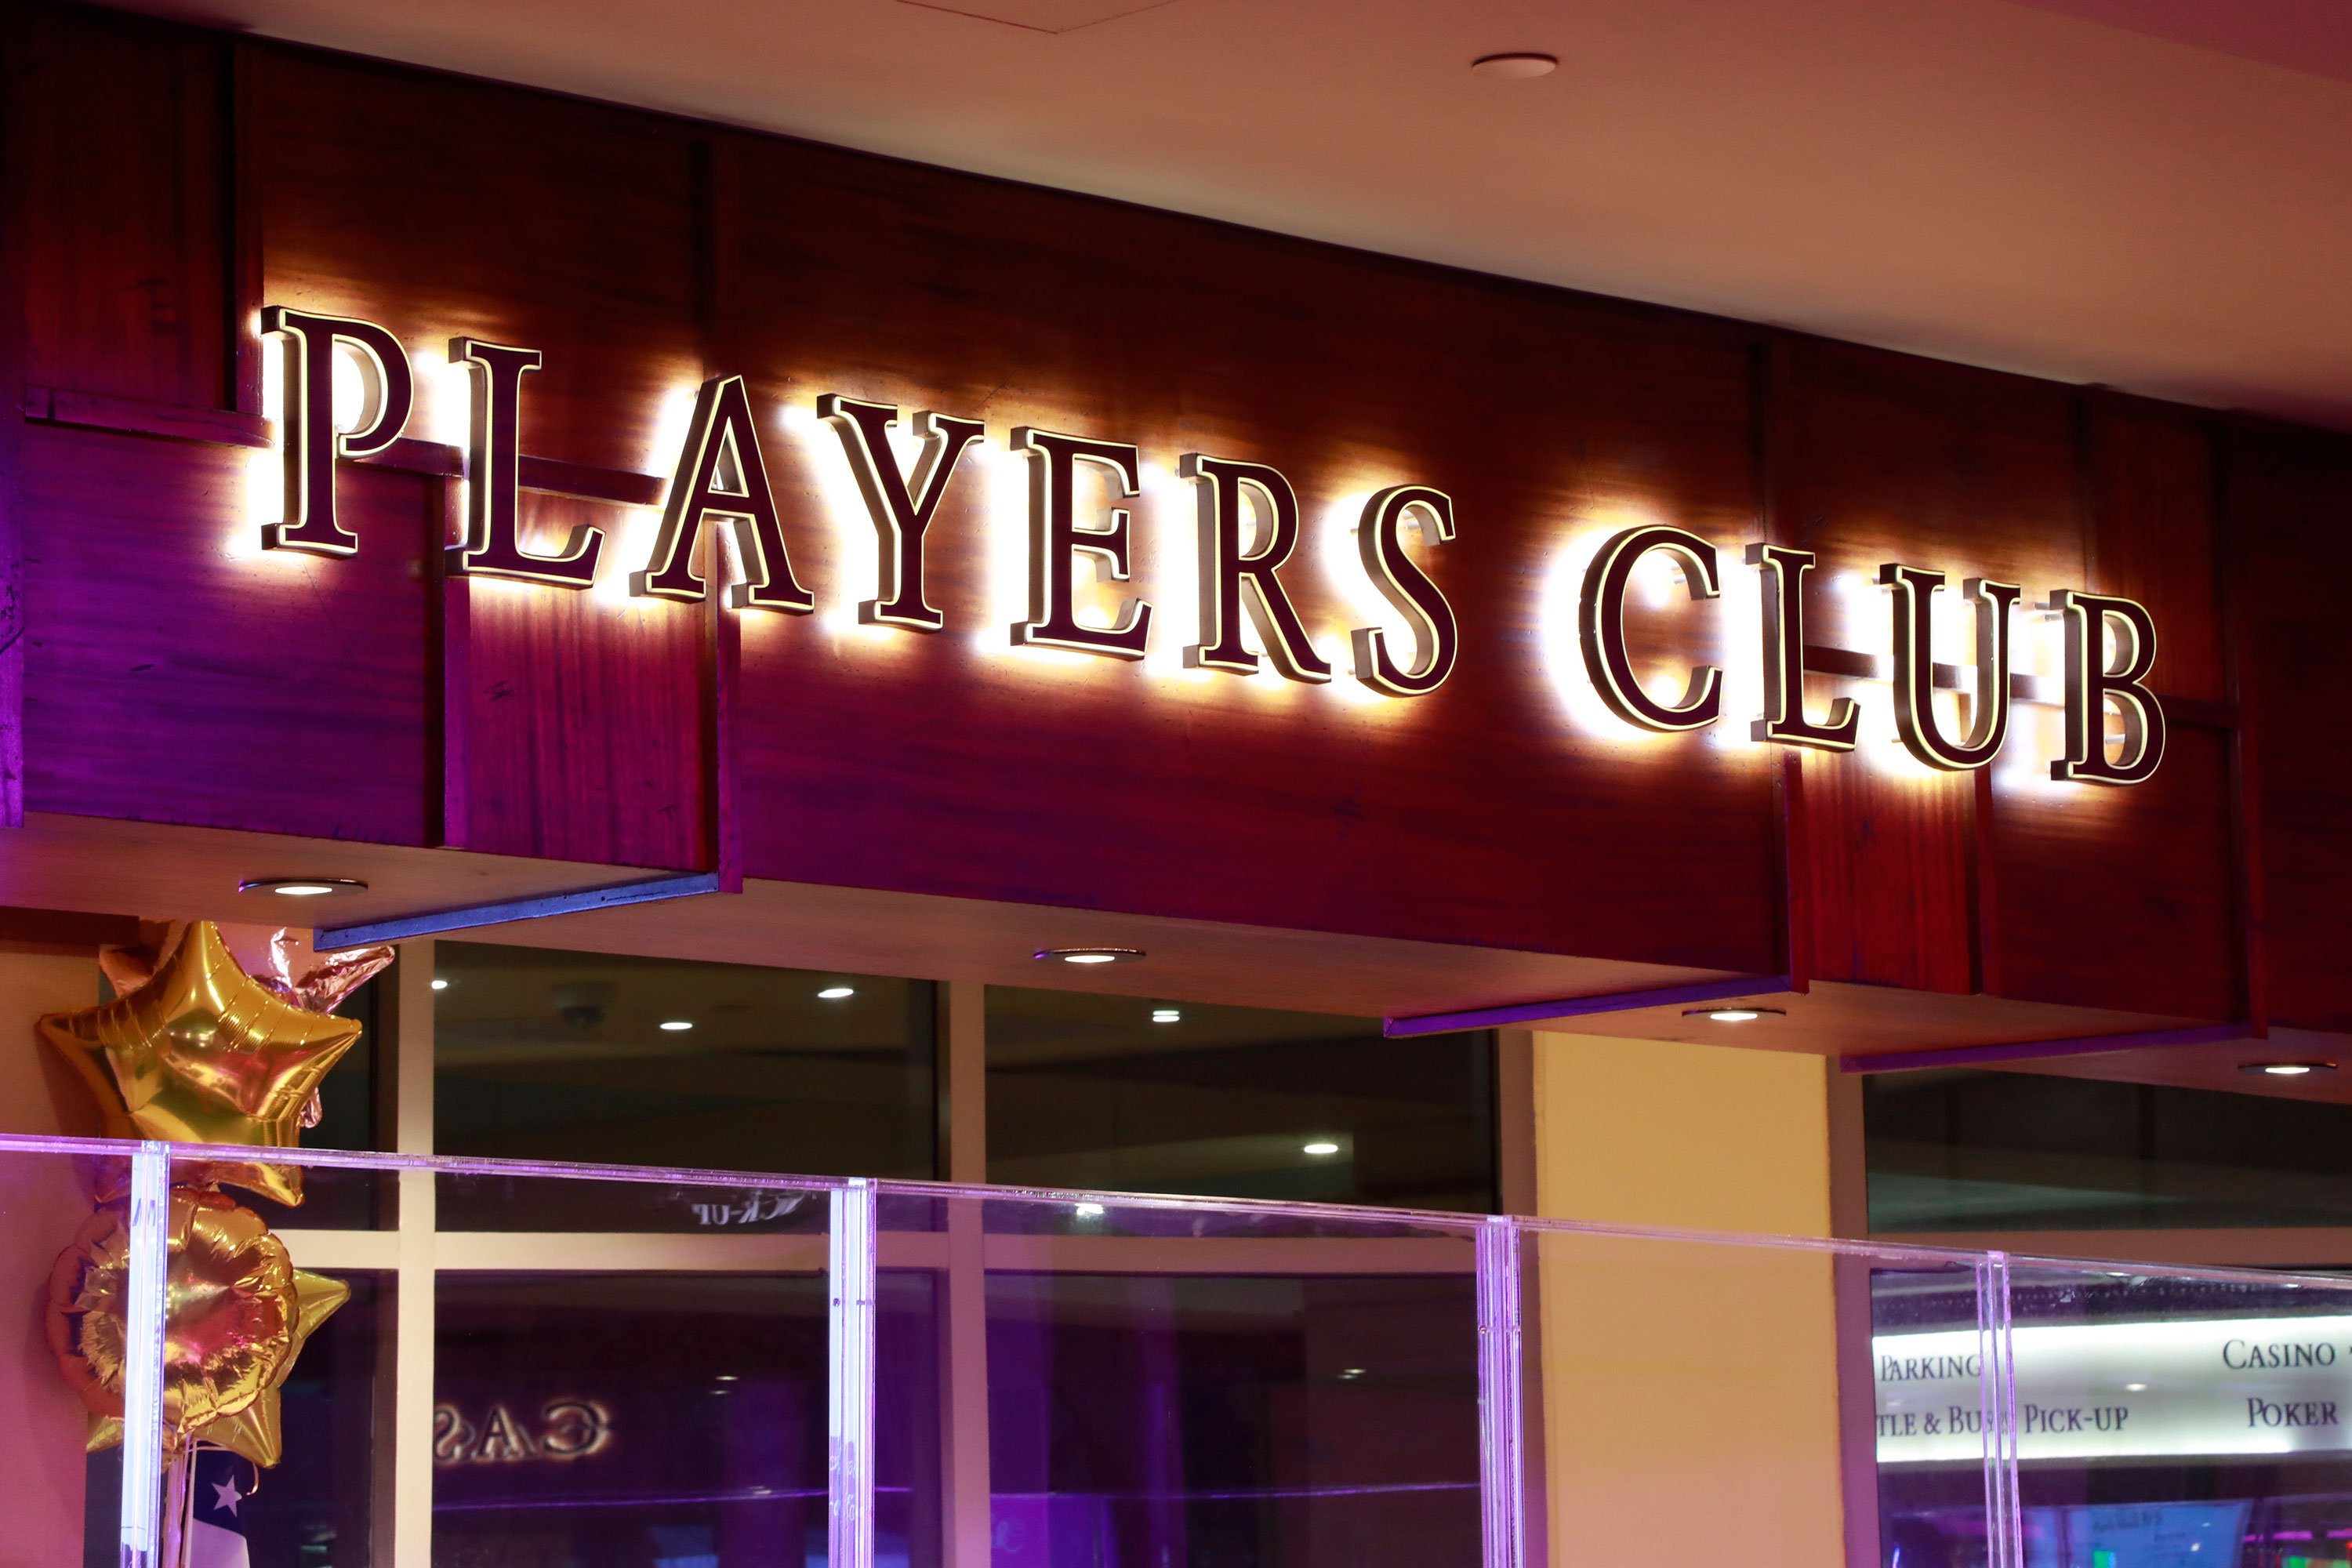 Players club sign